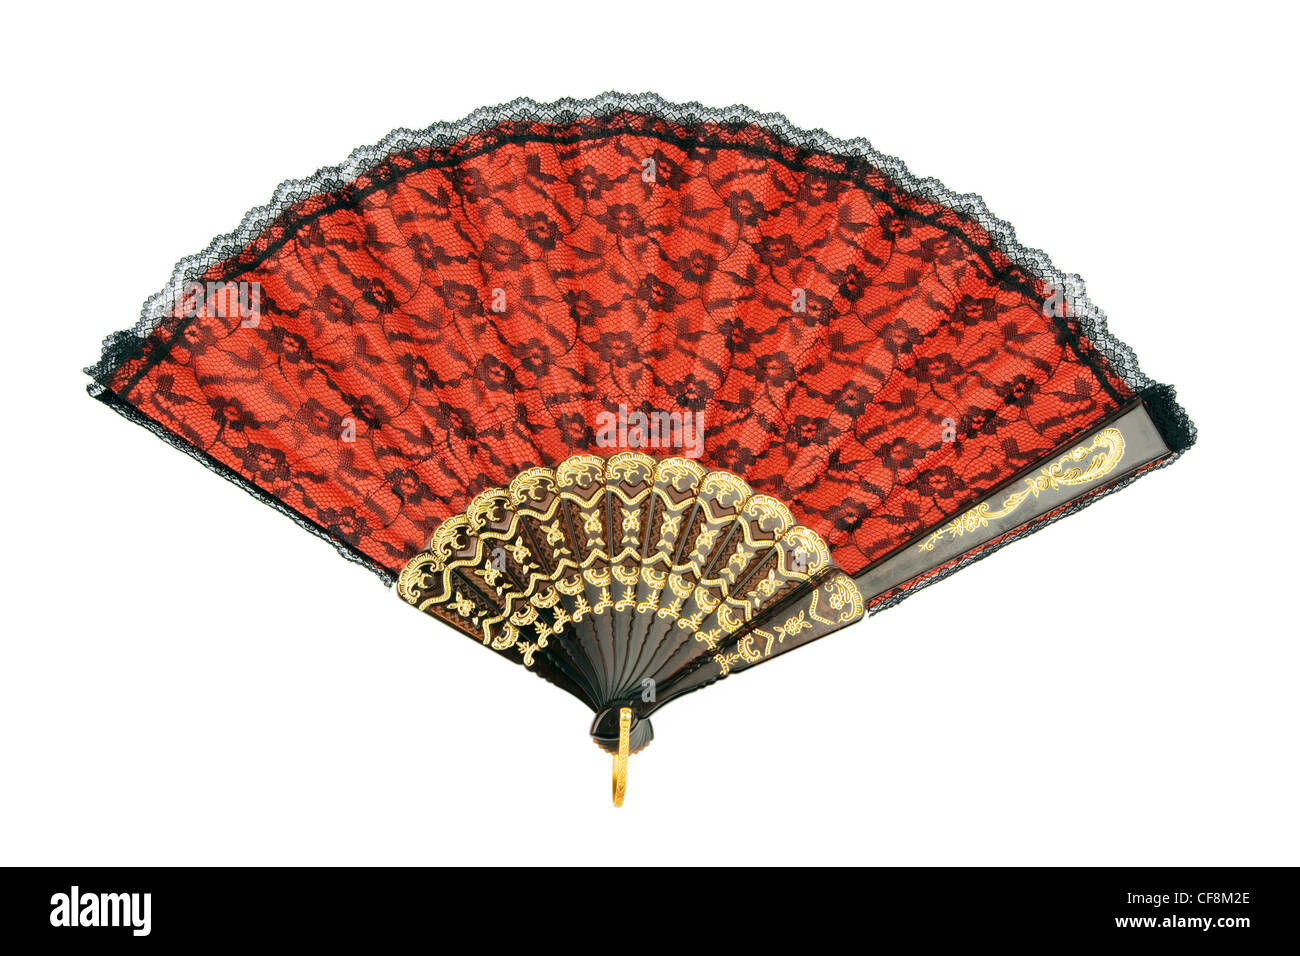 a fan to cool in the hot summer of spain. - Stock Image